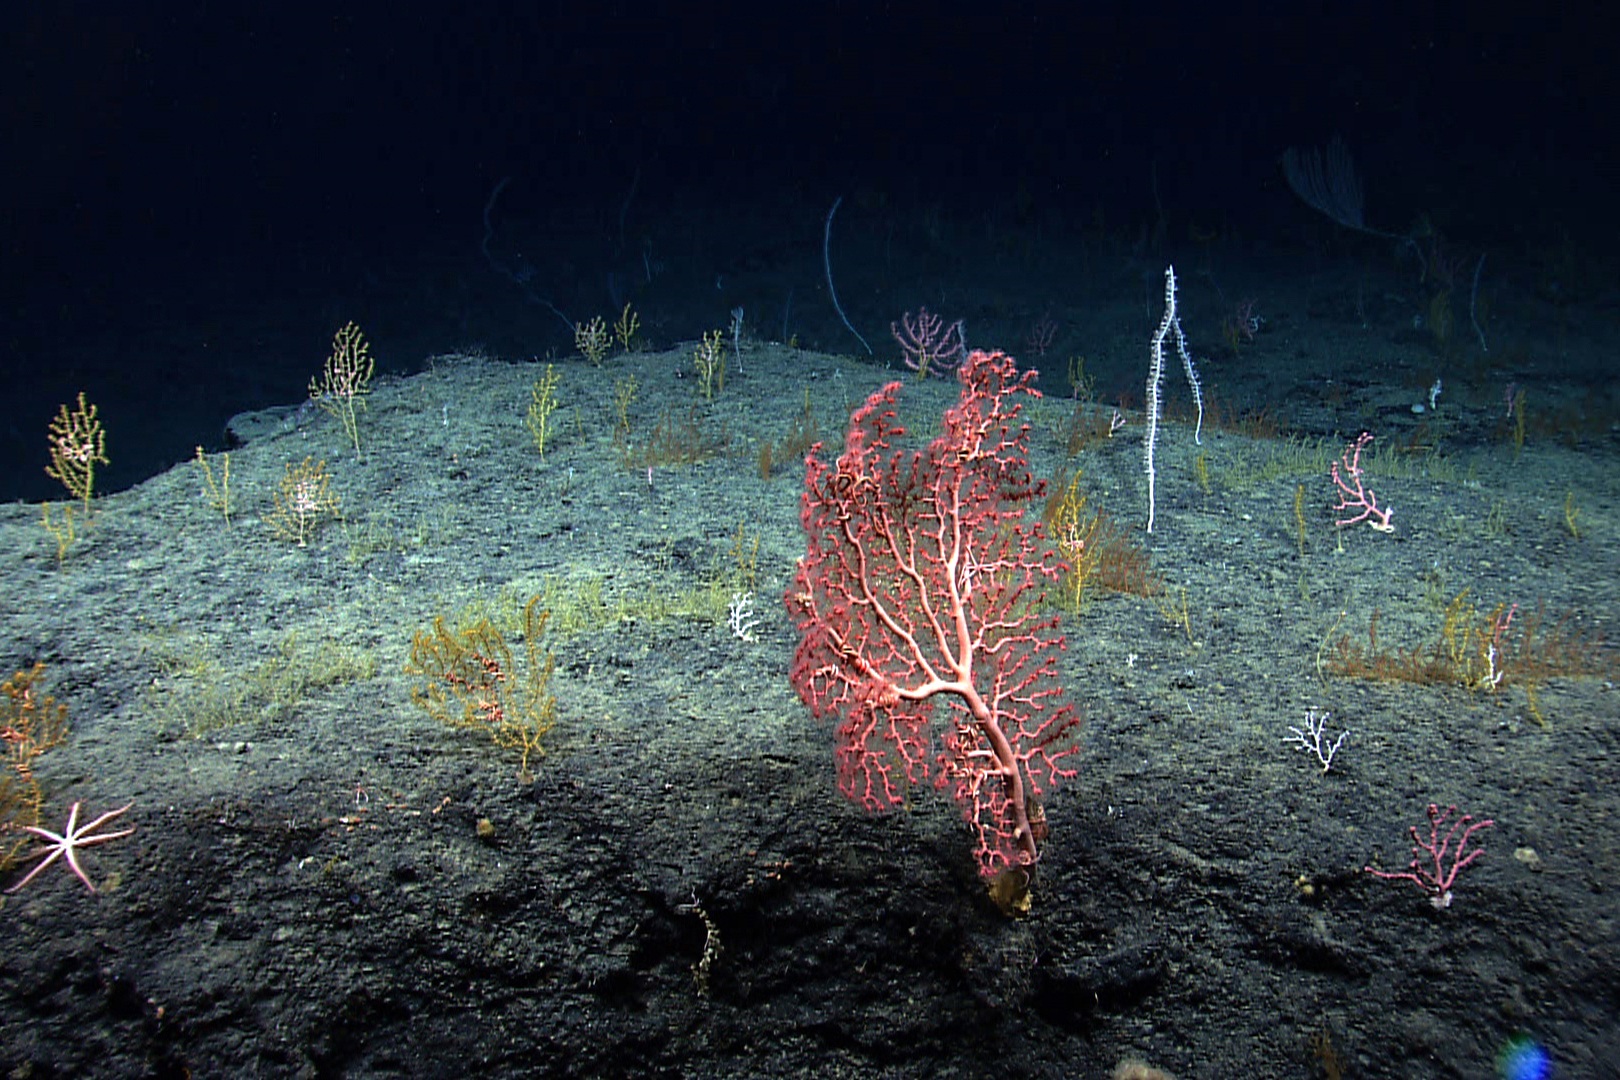 Underwater image of colorful deep sea corals in the Gulf of Mexico.